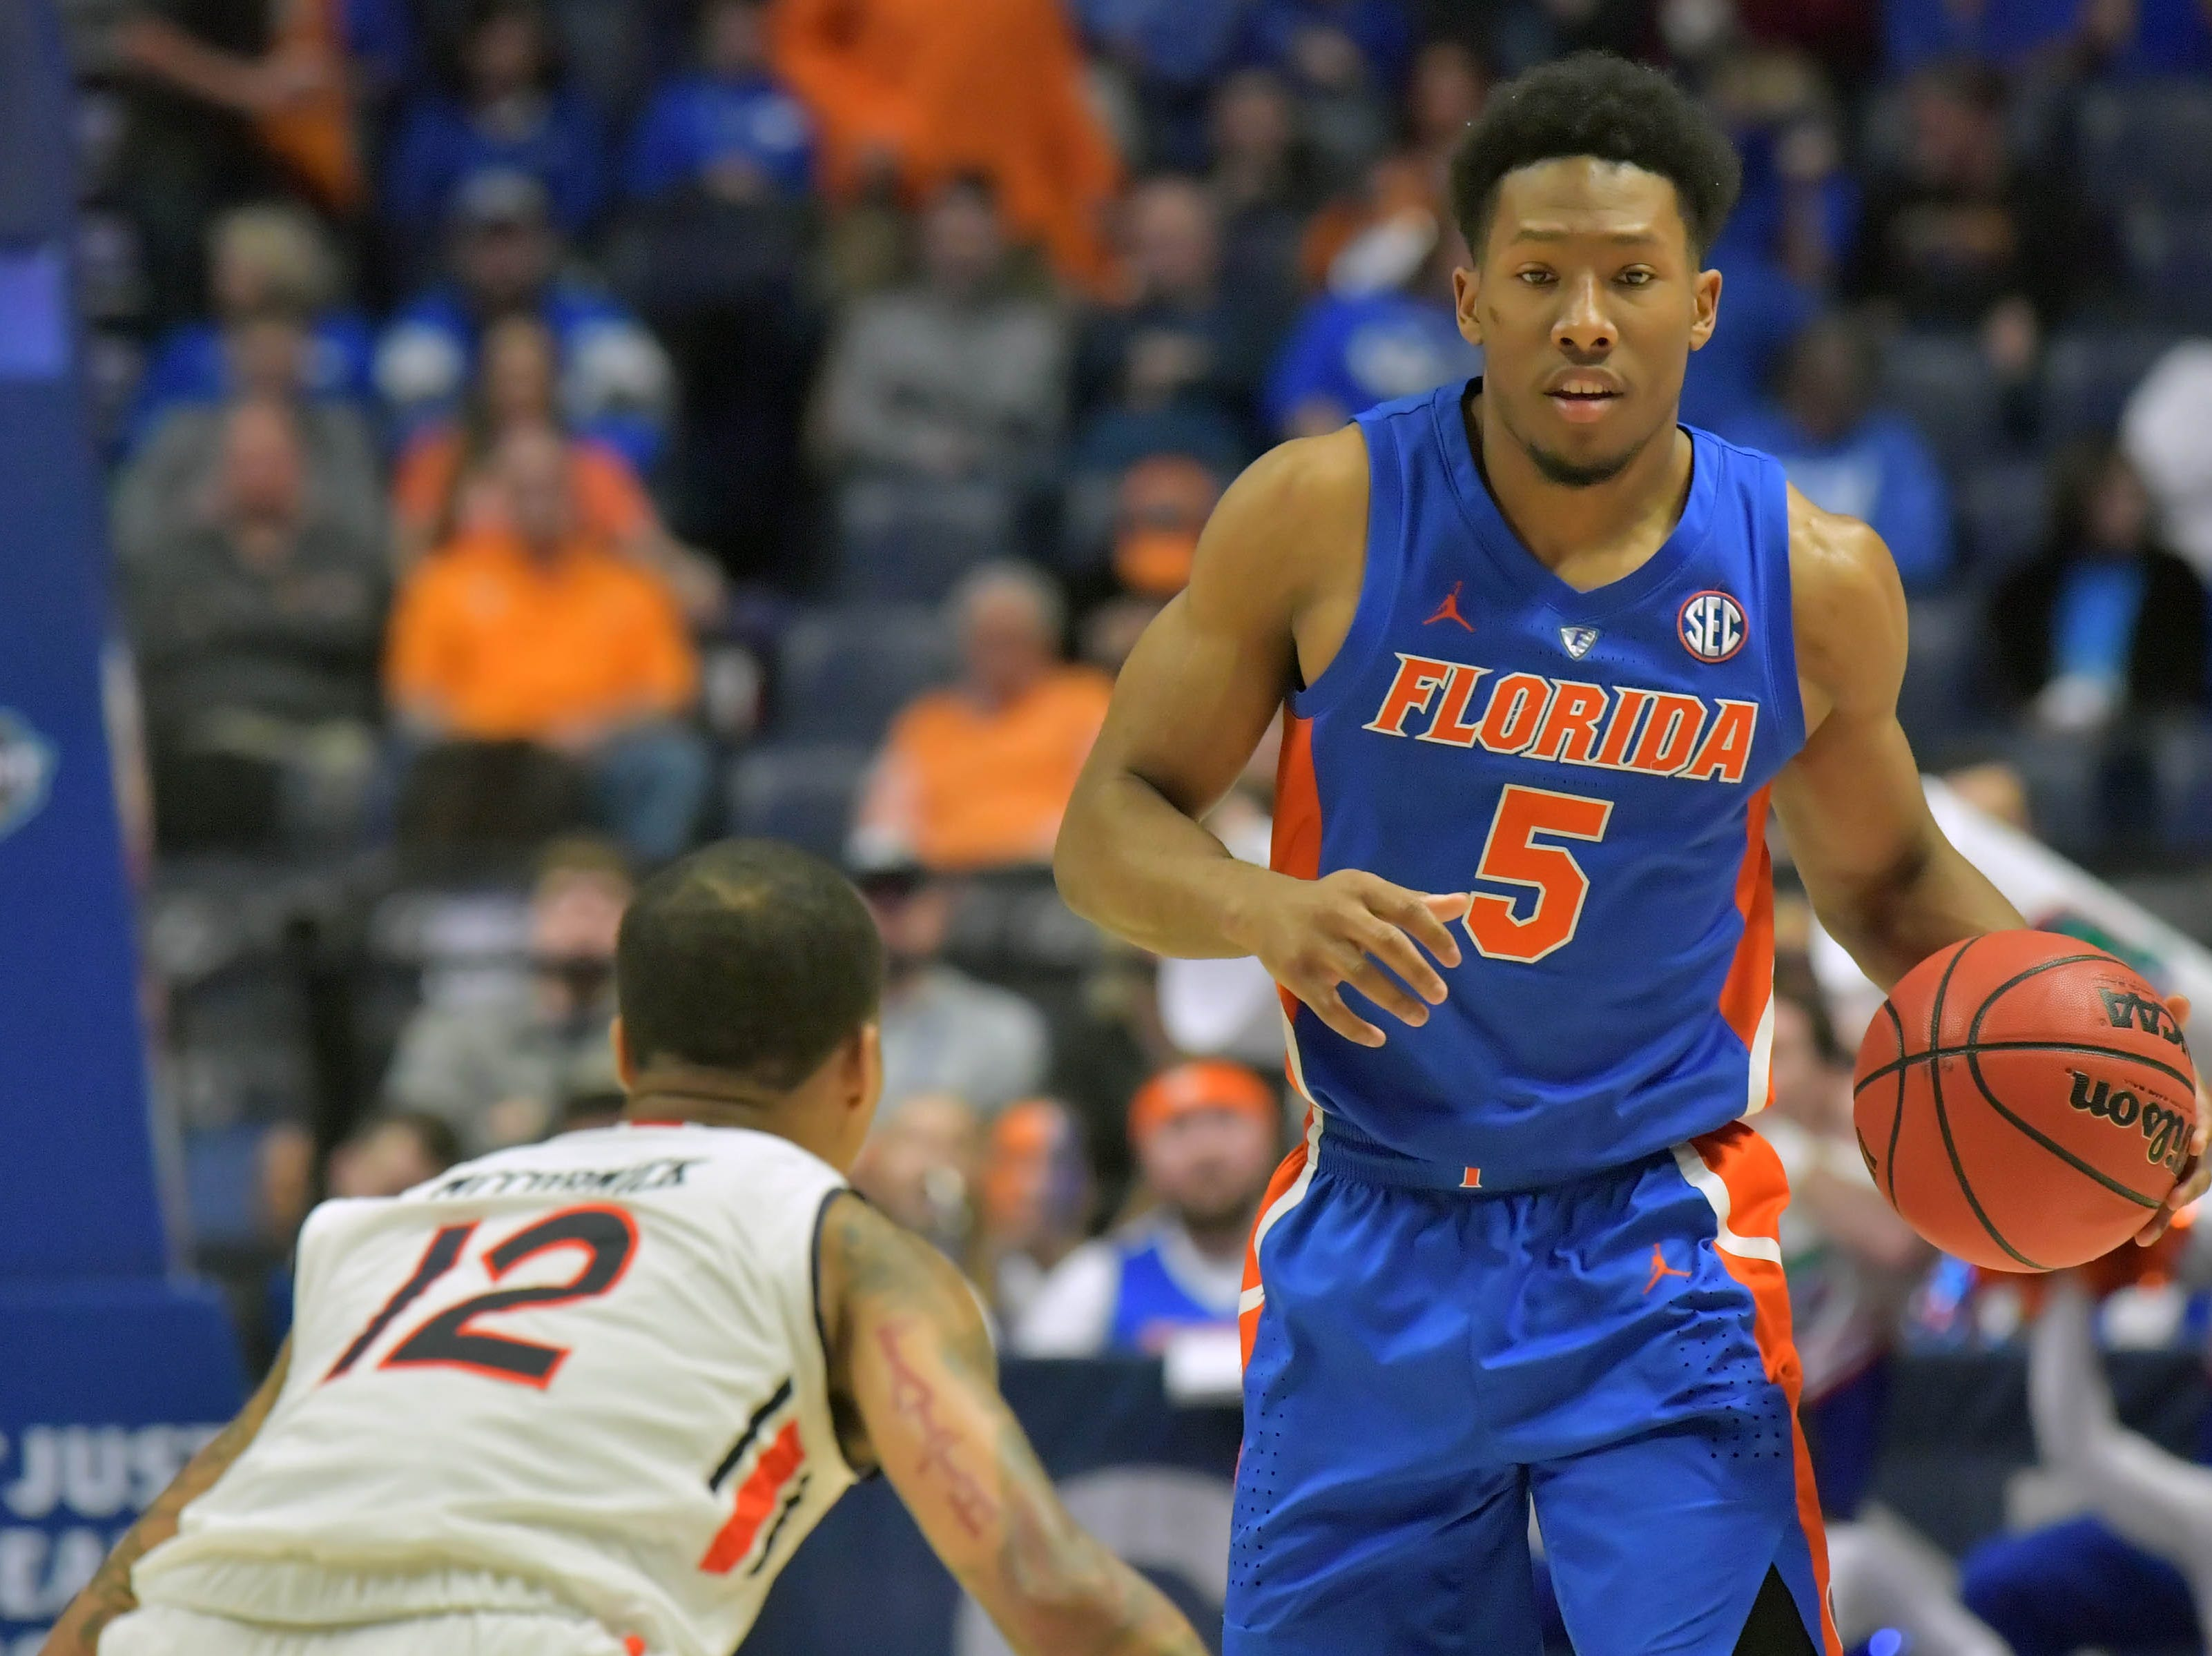 Mar 16, 2019; Nashville, TN, USA; Florida Gators guard KeVaughn Allen (5) controls the ball against Auburn Tigers guard J'Von McCormick (12) during the first half of game eleven in the SEC conference tournament at Bridgestone Arena. Mandatory Credit: Jim Brown-USA TODAY Sports